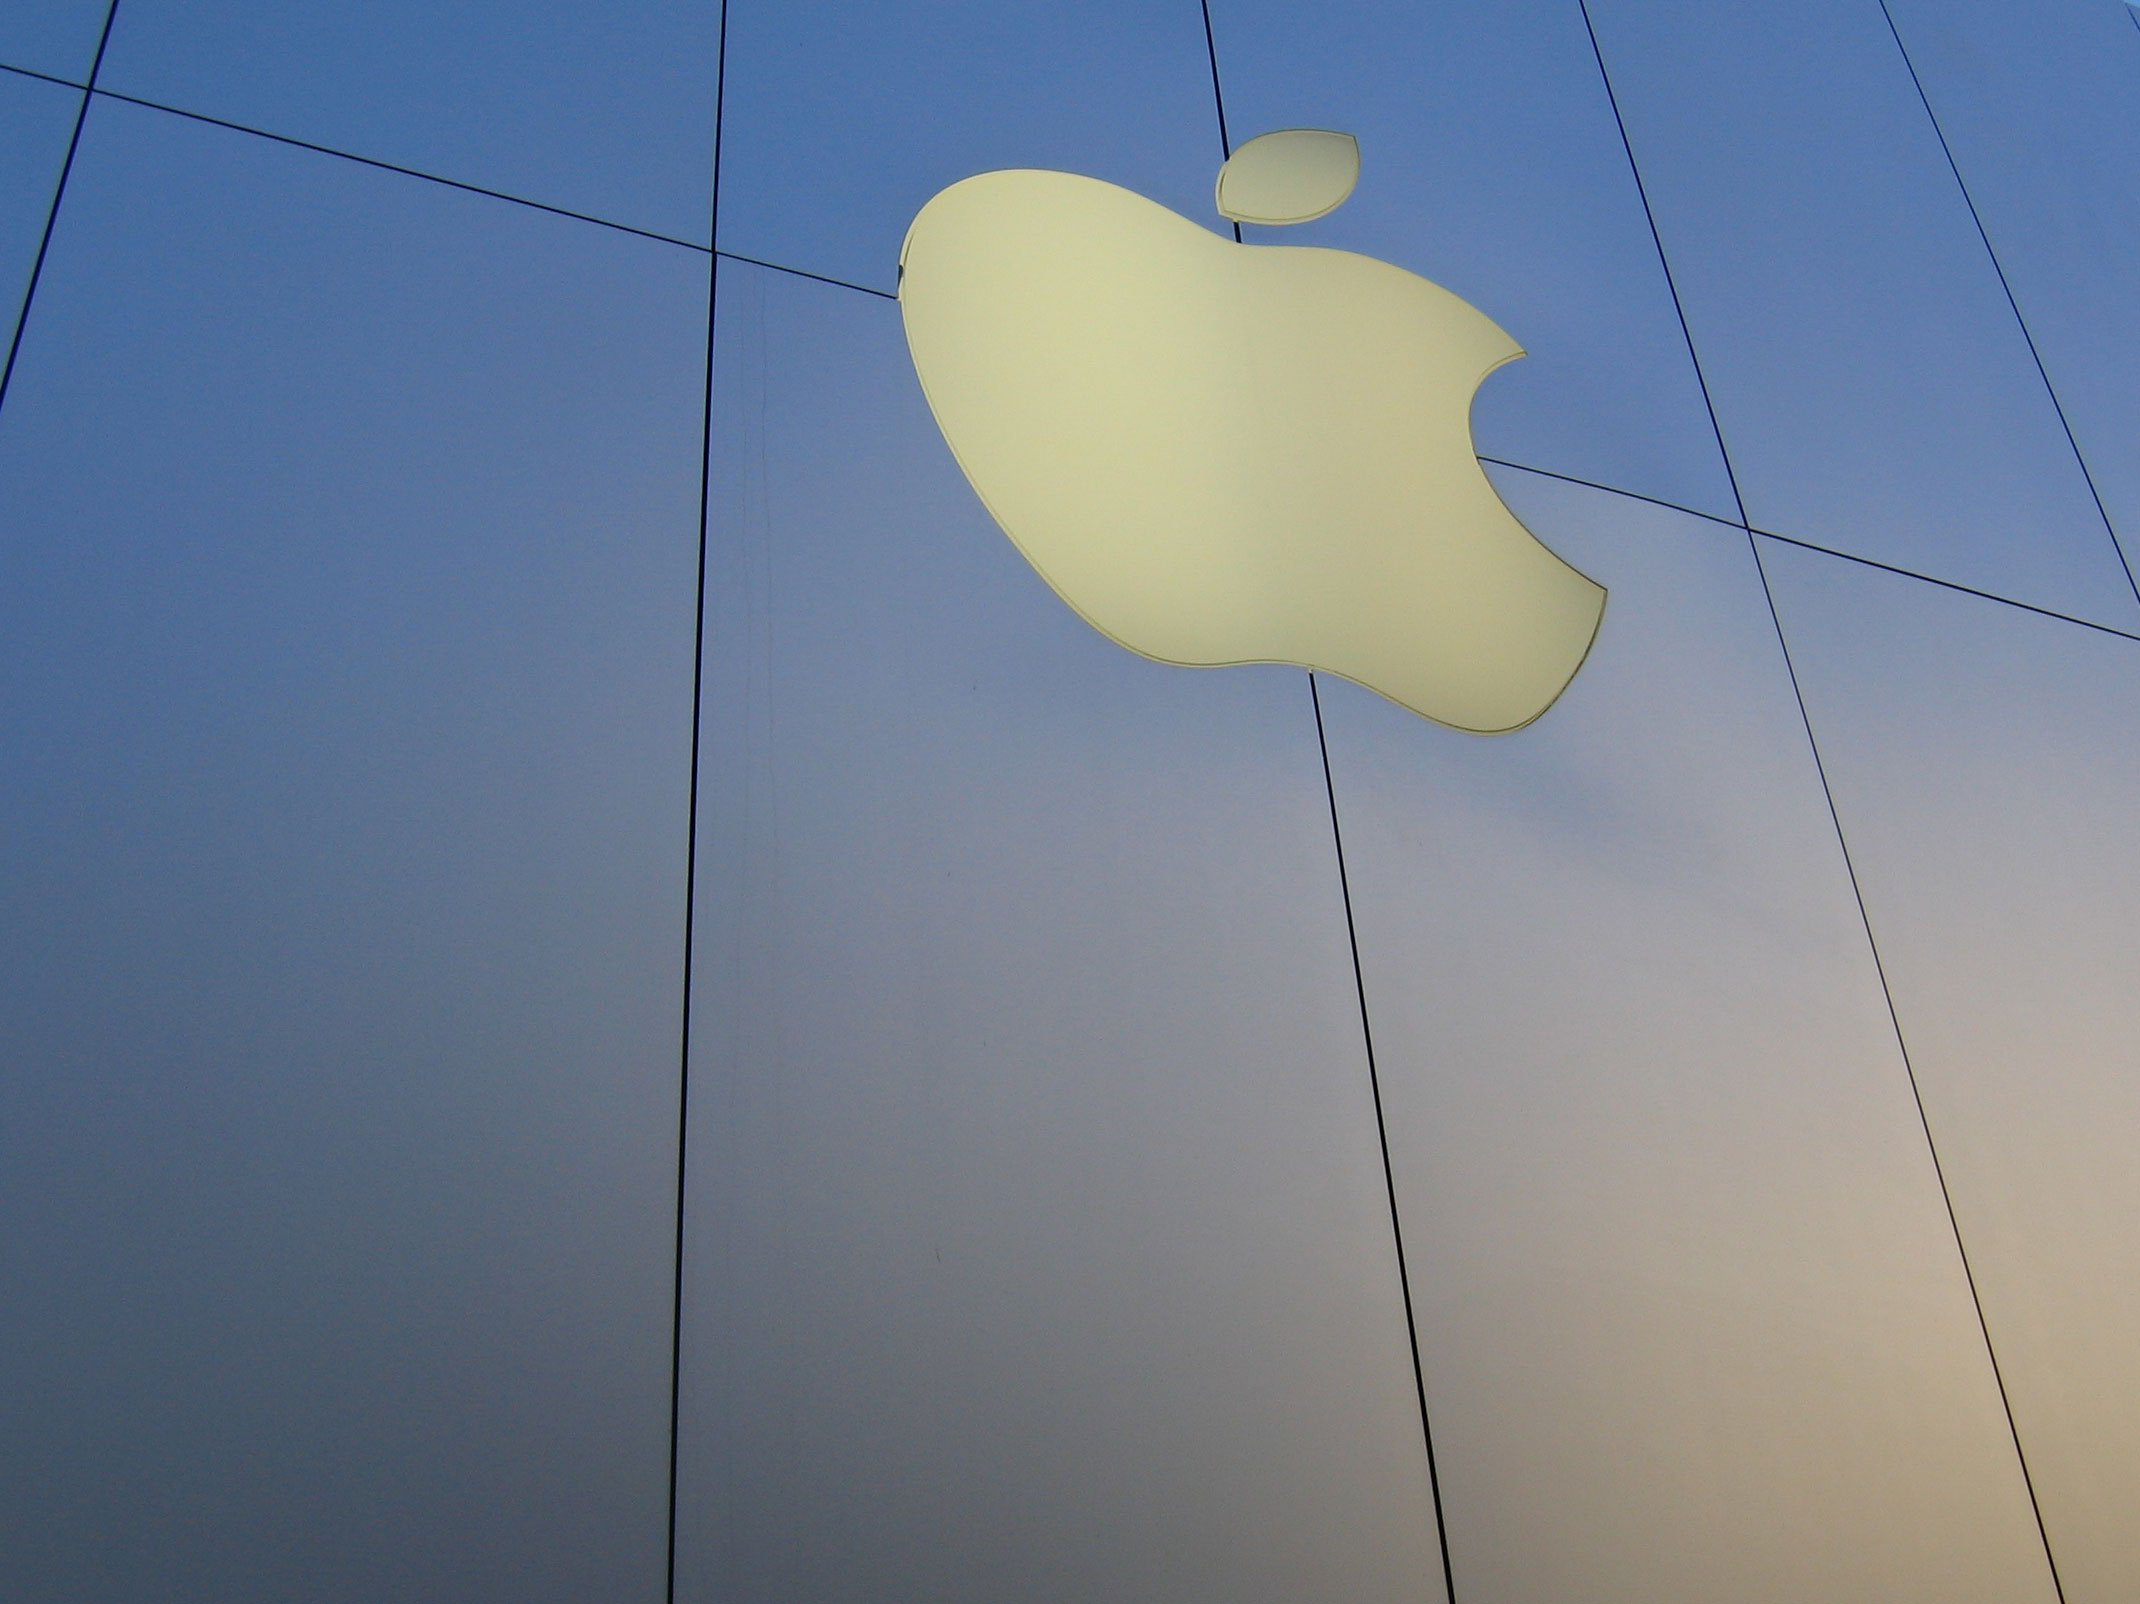 Apple now has $81.5B in cash, 13.2M sq. ft. of facilities and 60K employees